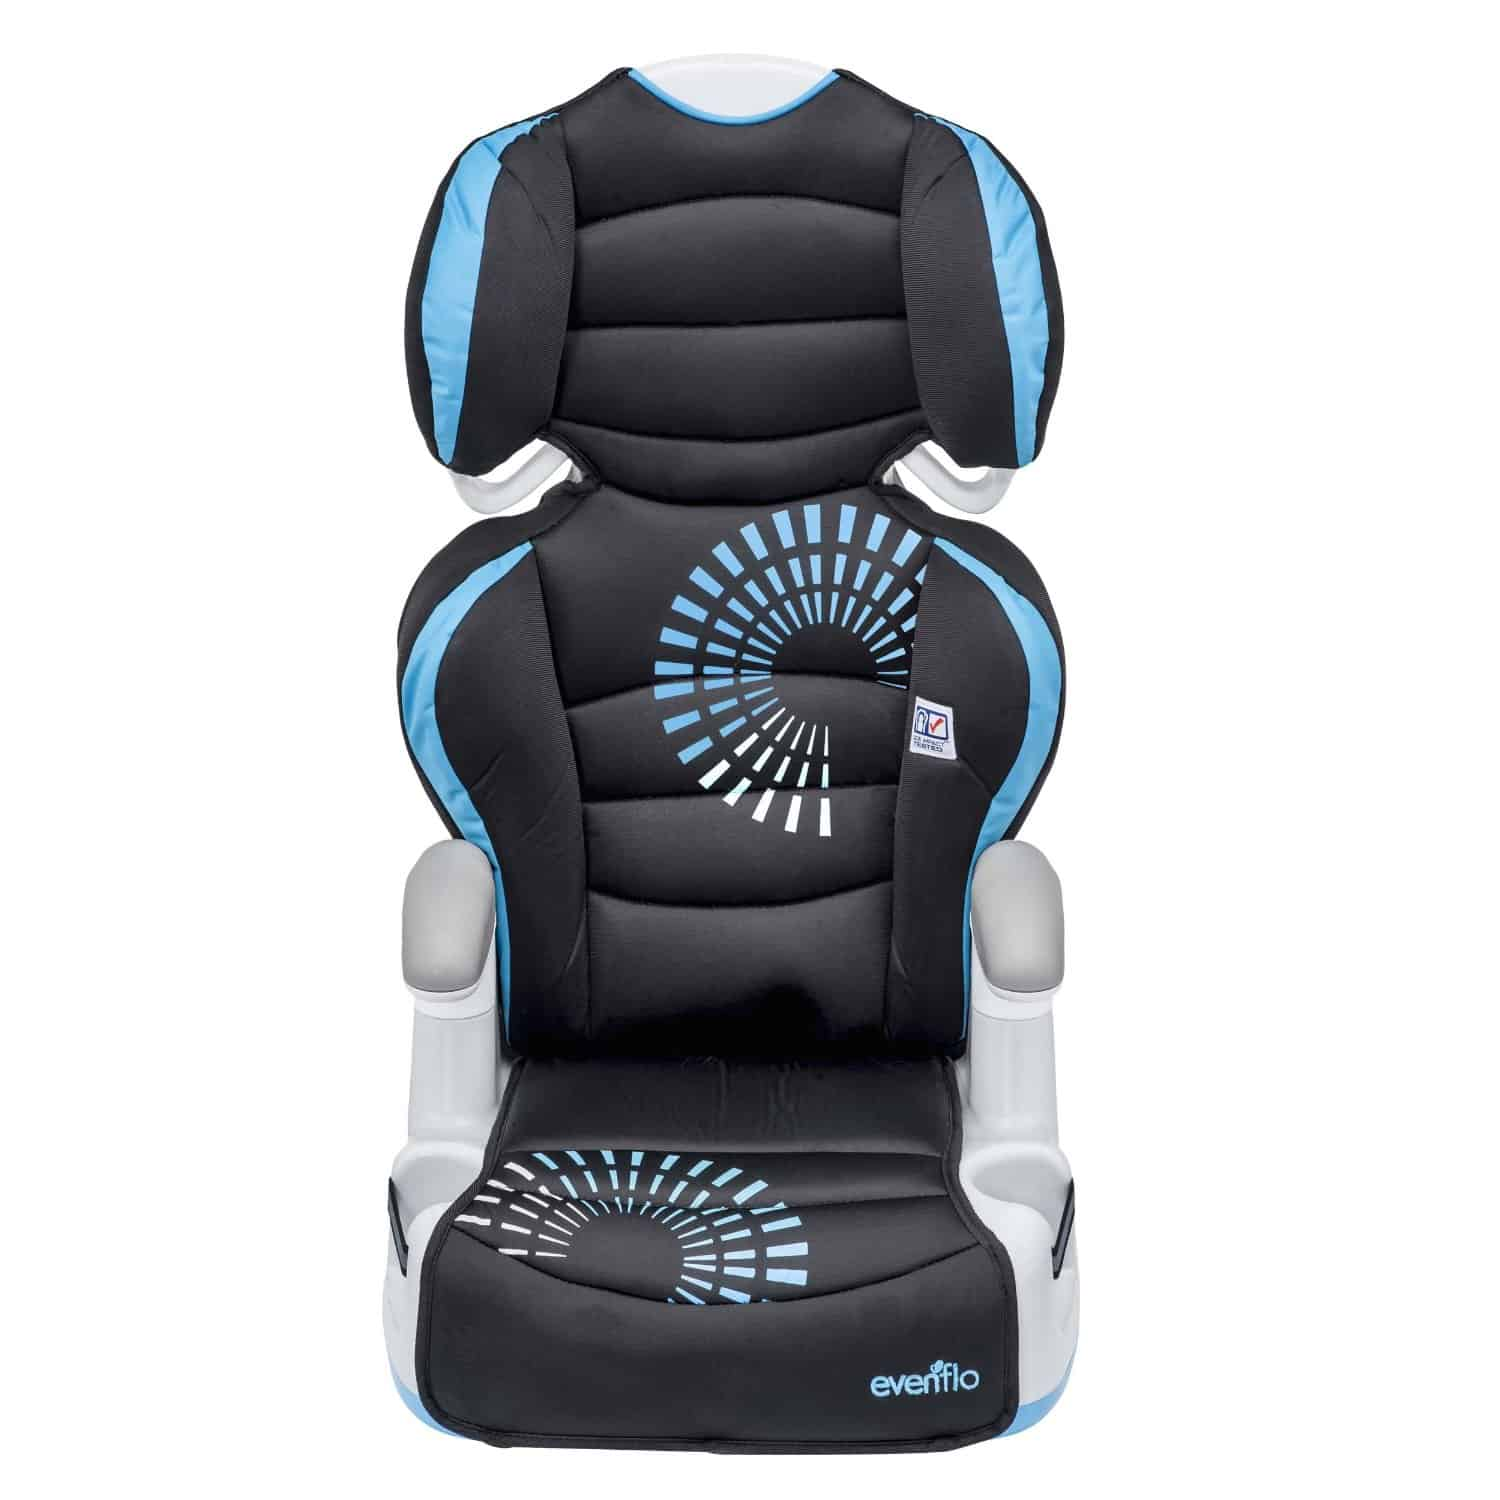 save 54 on the evenflo big kid amp booster car seat free shipping eligible. Black Bedroom Furniture Sets. Home Design Ideas